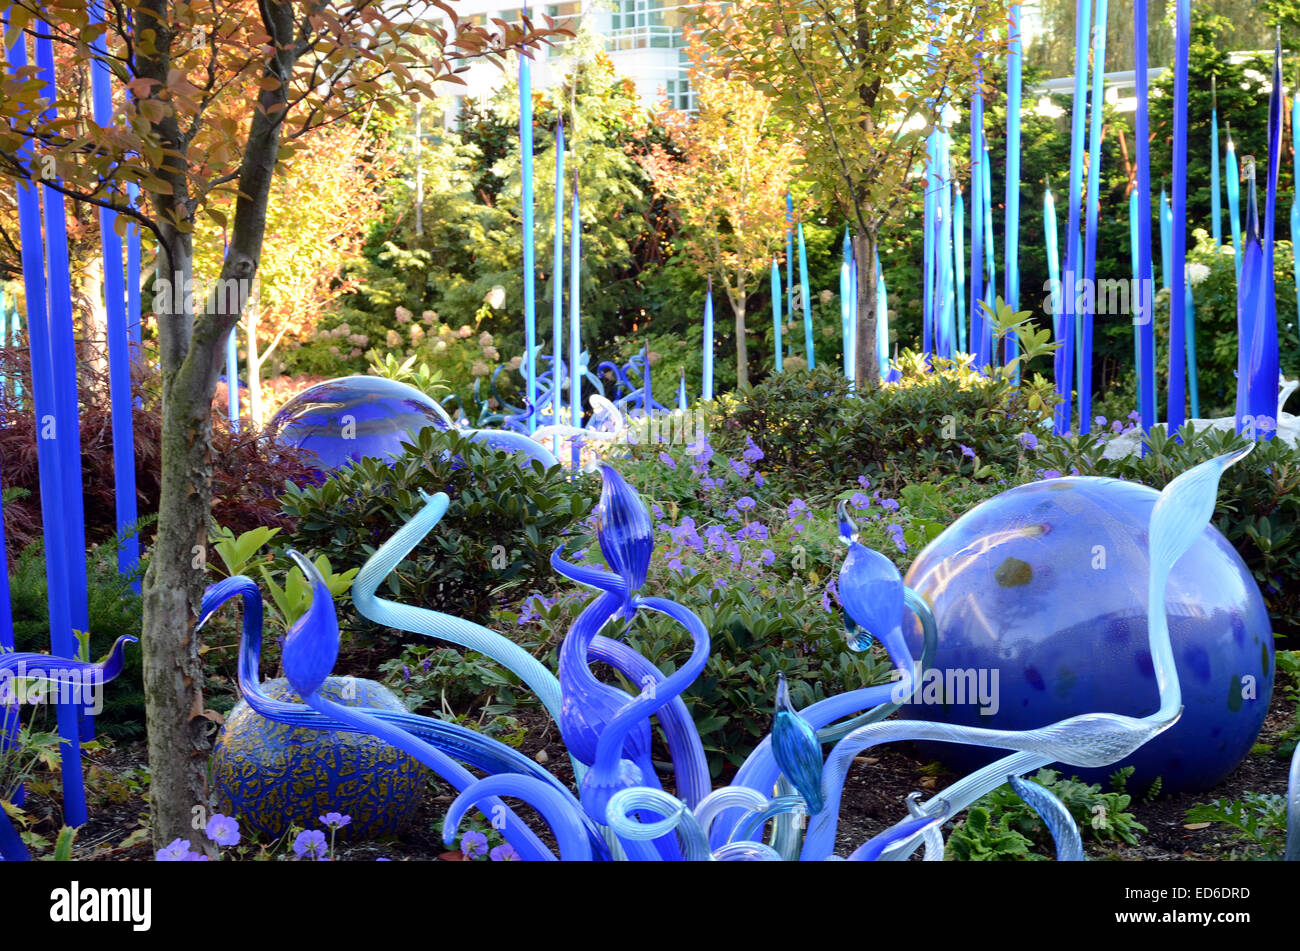 dale chihuly glass sculpture chihuly garden and glass seattle stock image - Chihuly Garden And Glass Seattle